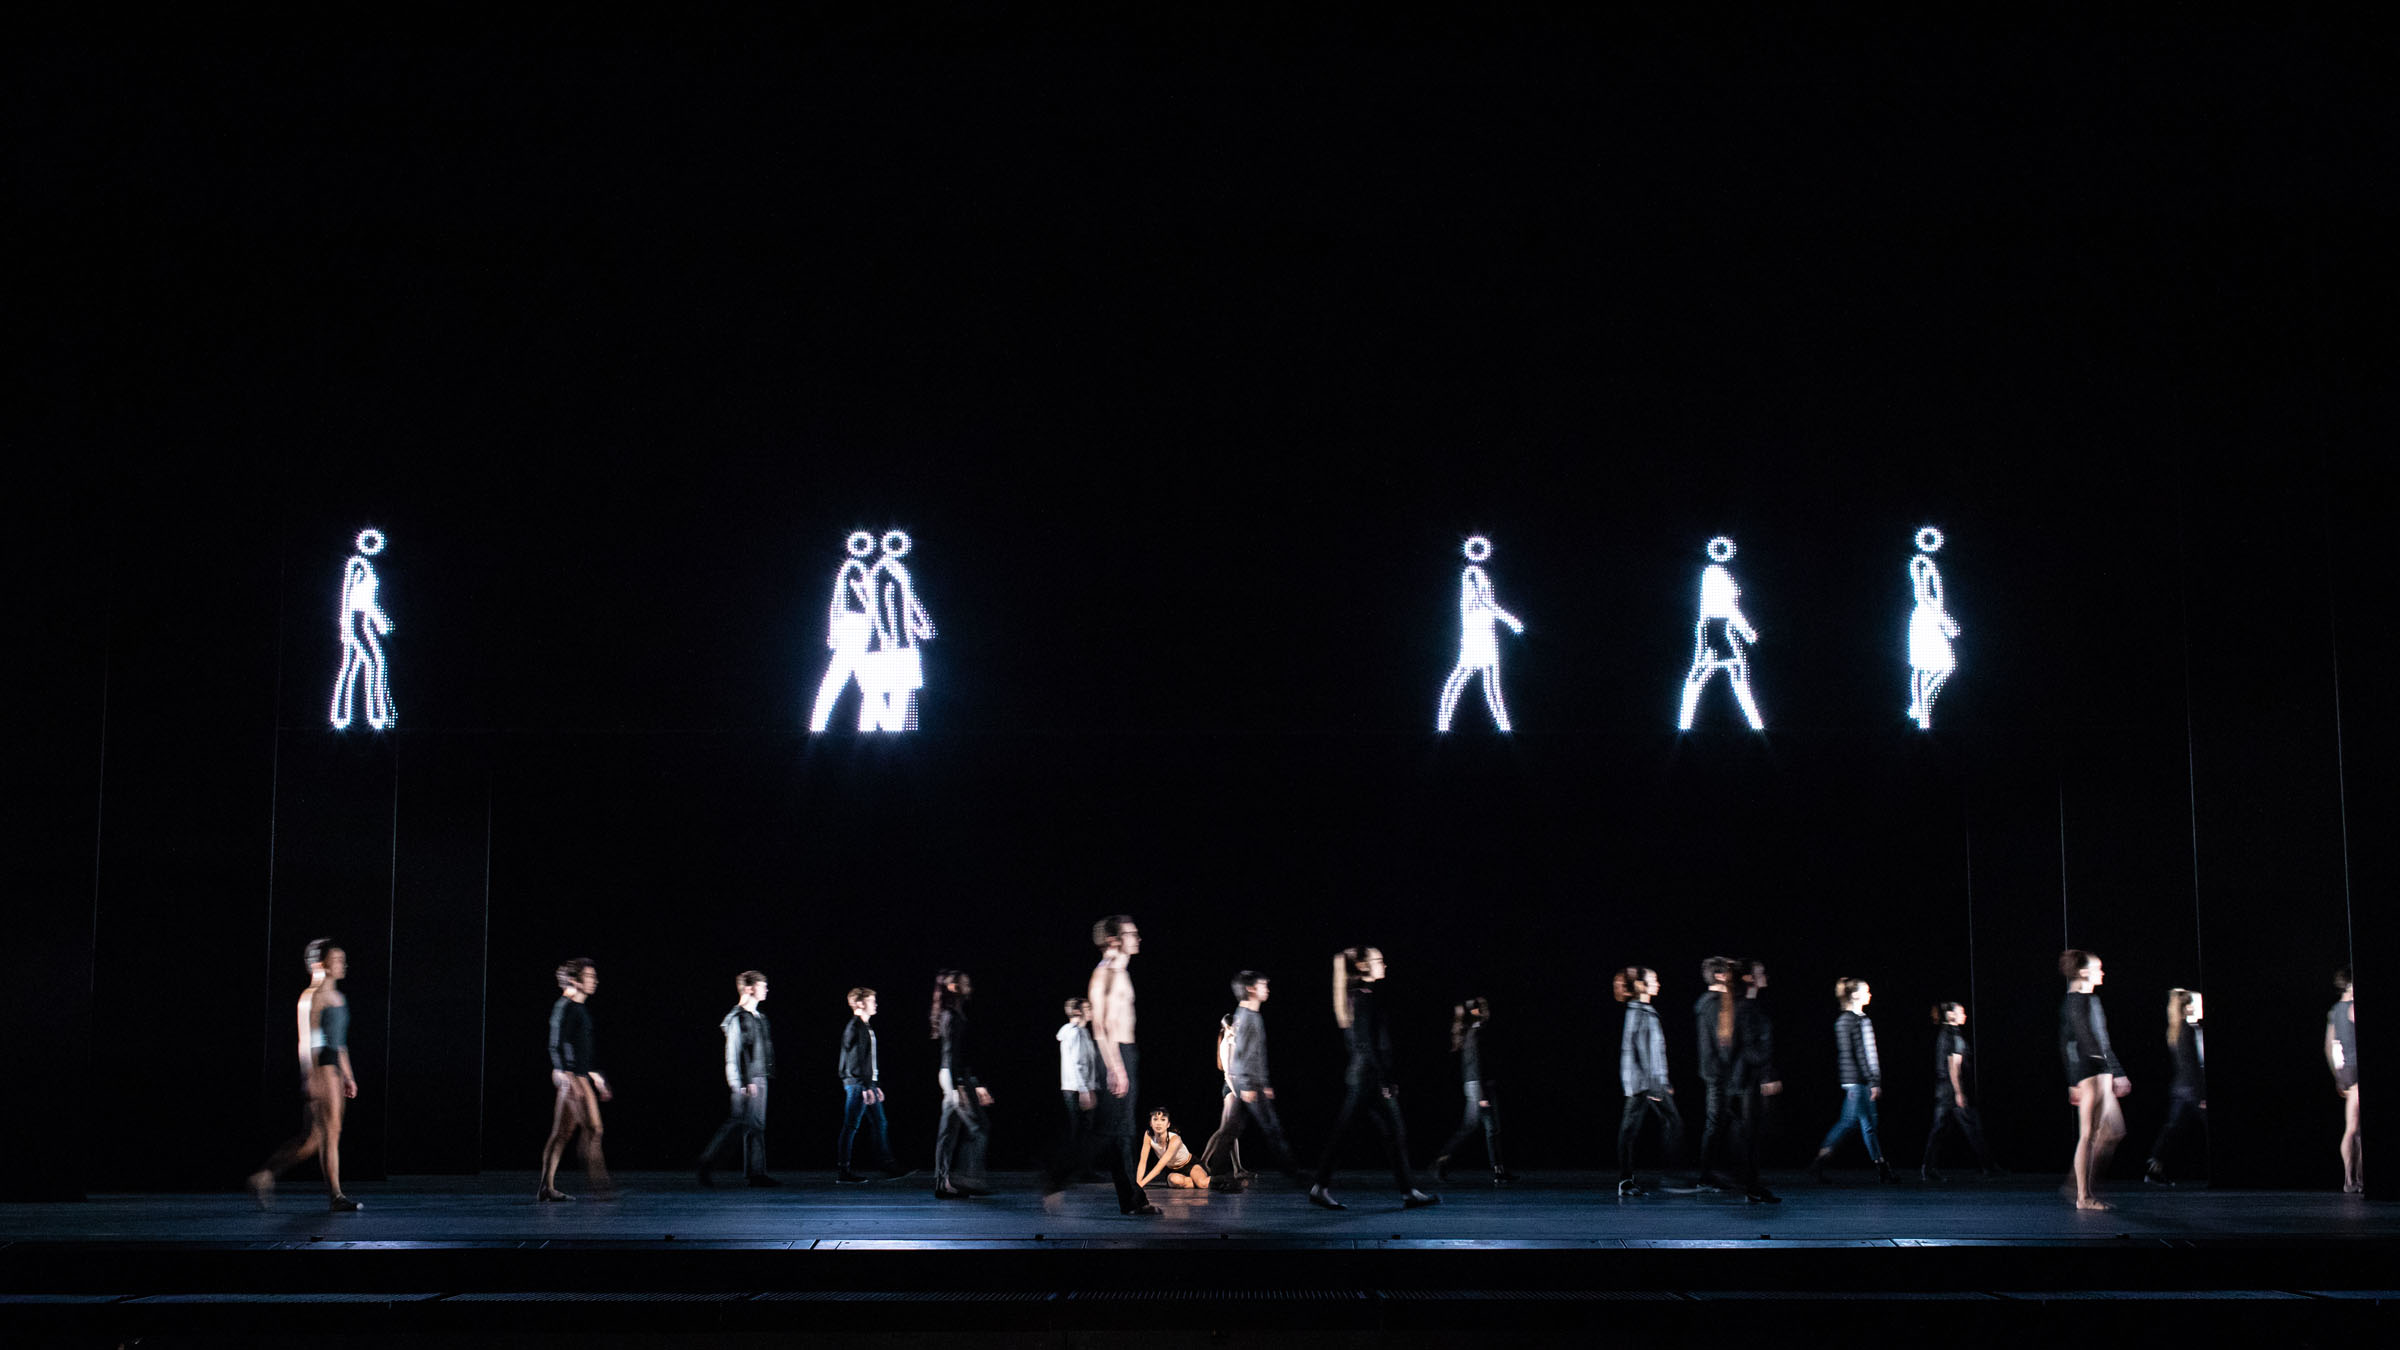 The Royal Ballet with Julian Opie's artwork in Infra